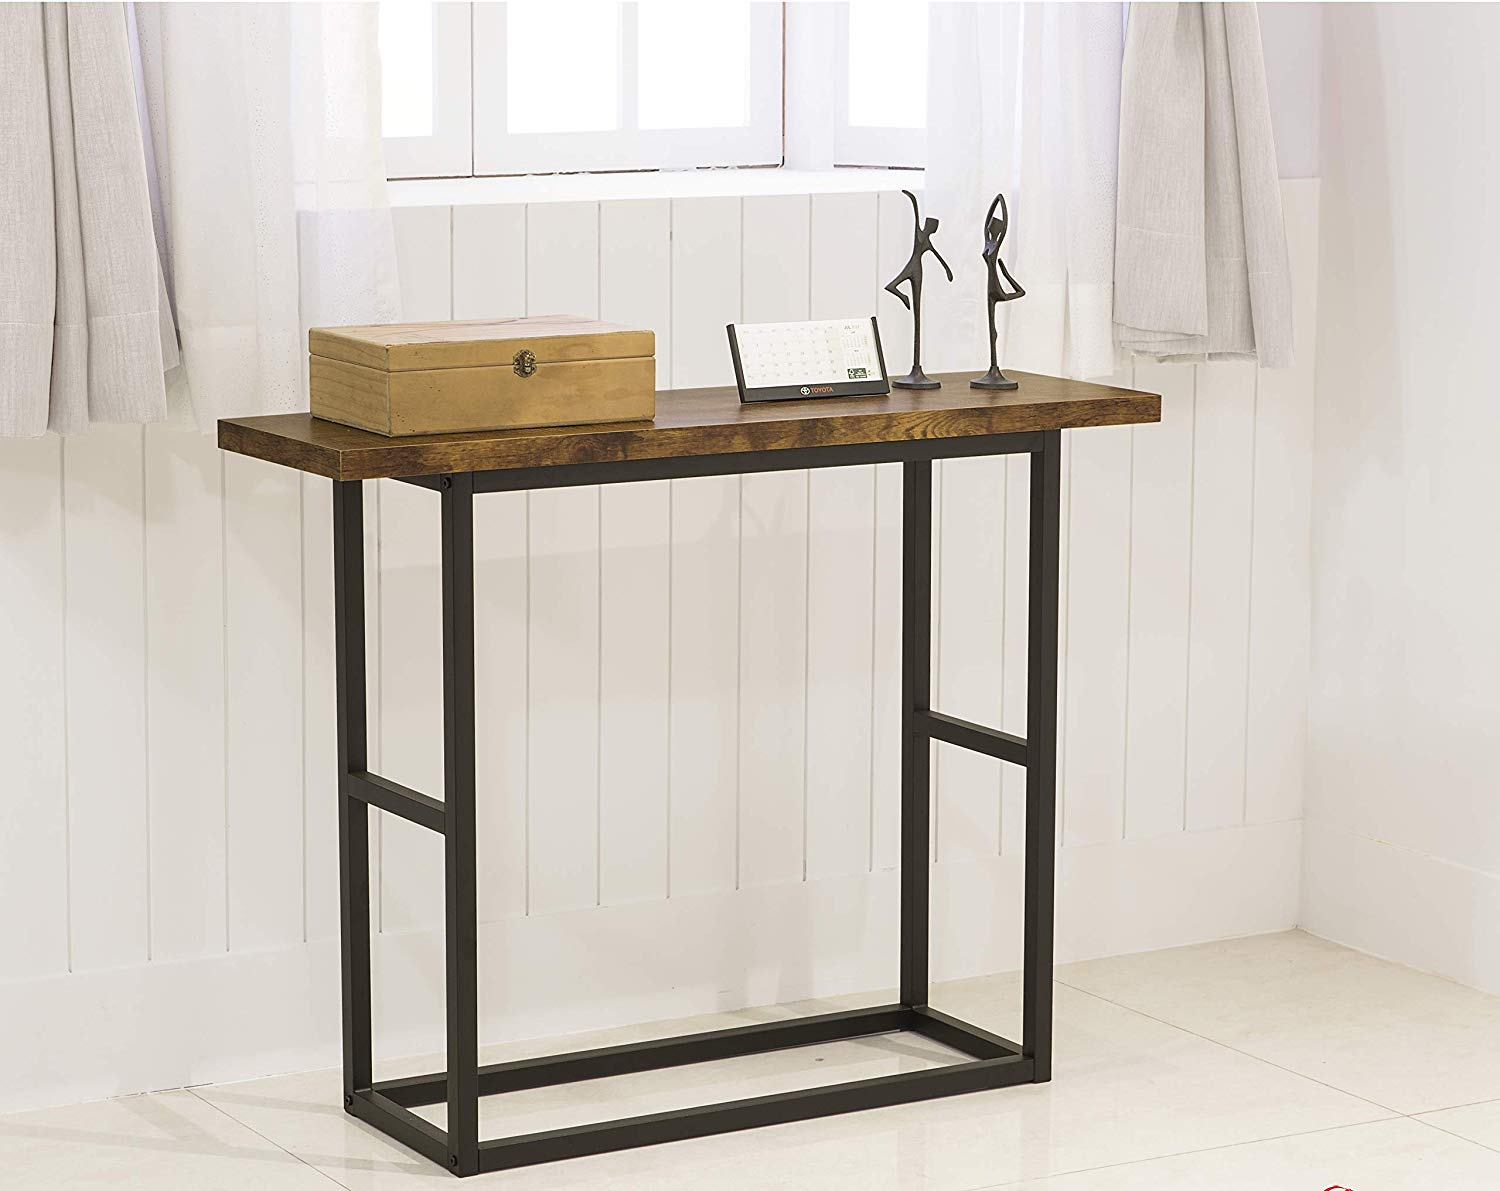 rustic amber finish metal frame console sofa accent table kitchen dining coffee linen small outdoor winsome timmy side lamps leaf round wood with glass top little drawers dressing